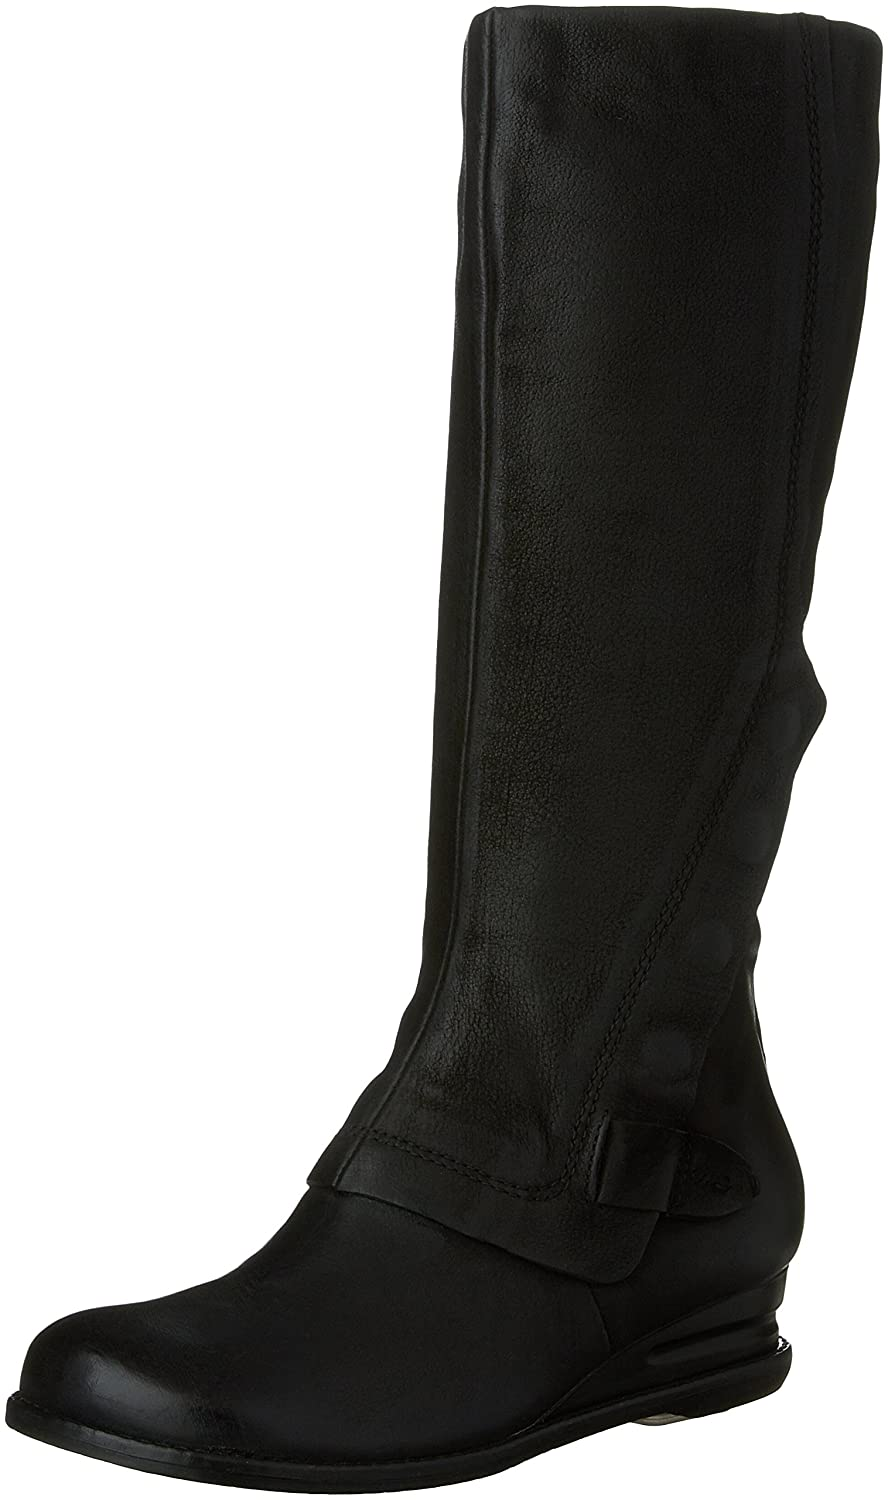 Miz Mooz Women's Bennett Riding Boot B01EI0VYPC 7.5 B(M) US|Black